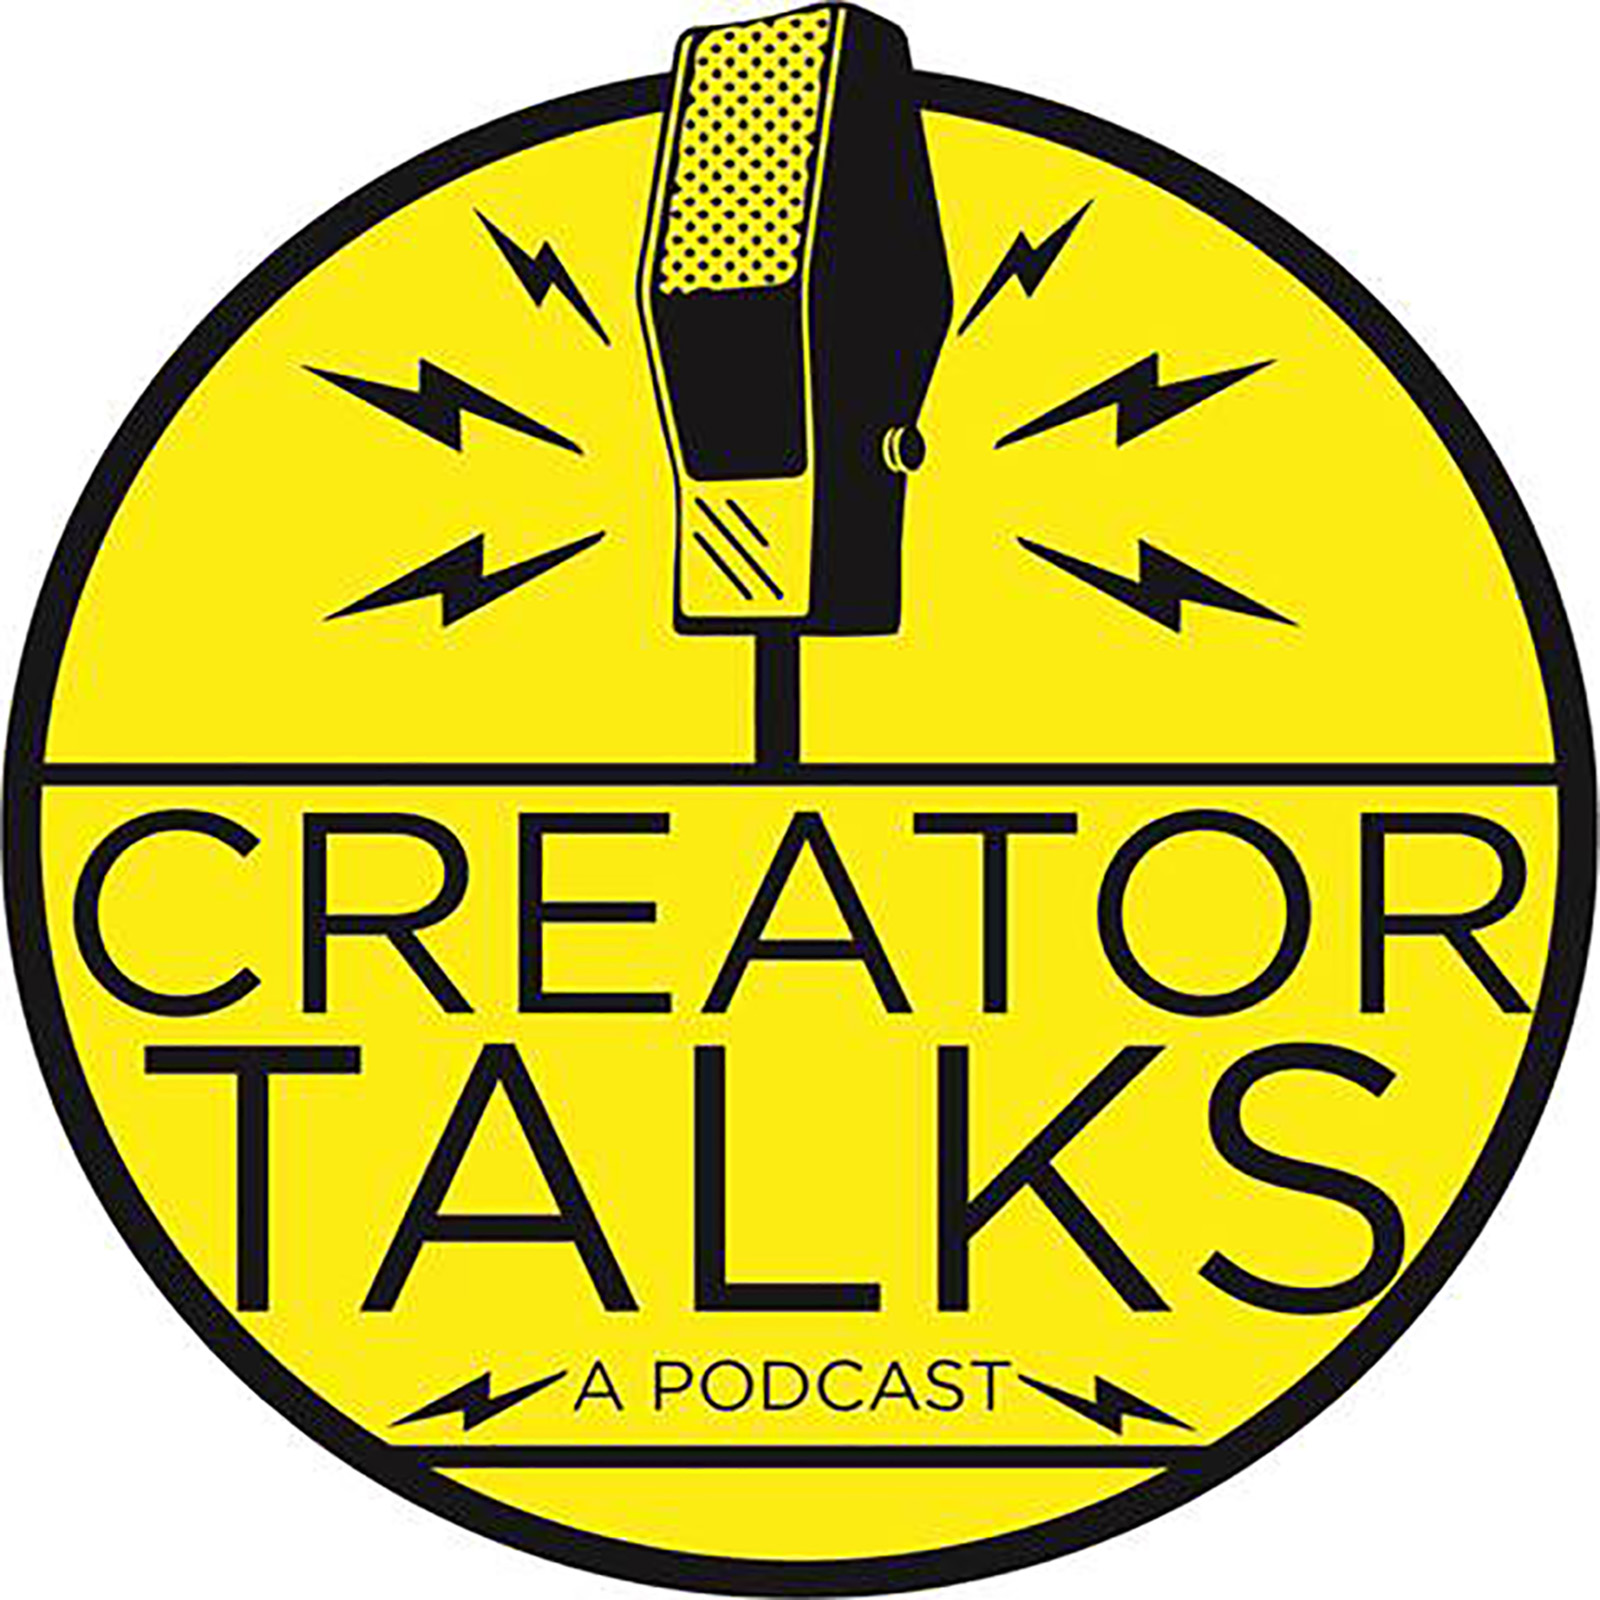 Creator Talks Podcast